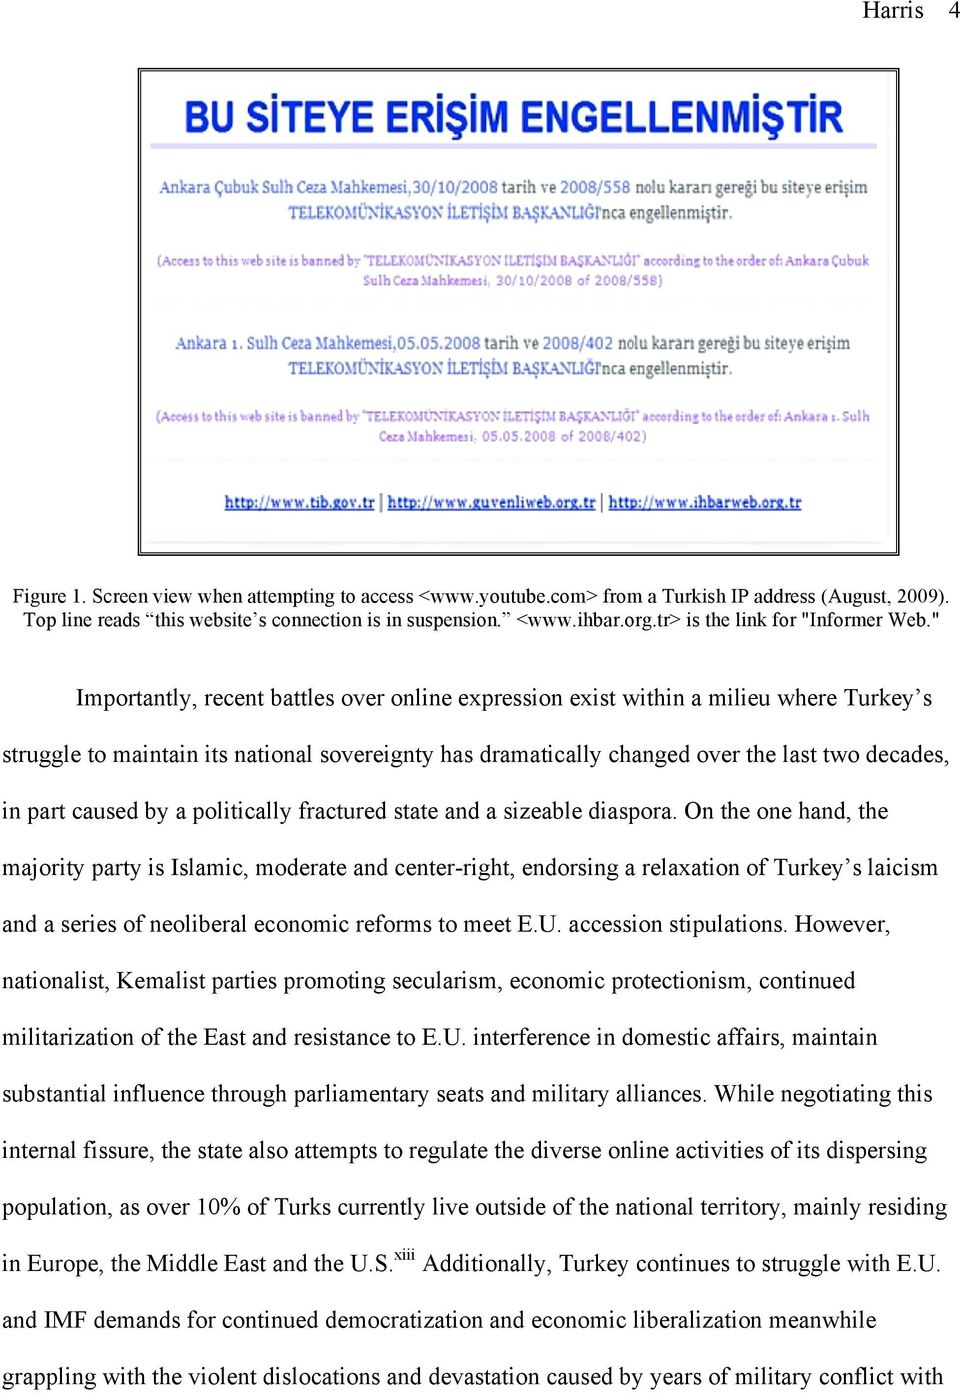 """ Importantly, recent battles over online expression exist within a milieu where Turkey s struggle to maintain its national sovereignty has dramatically changed over the last two decades, in part"